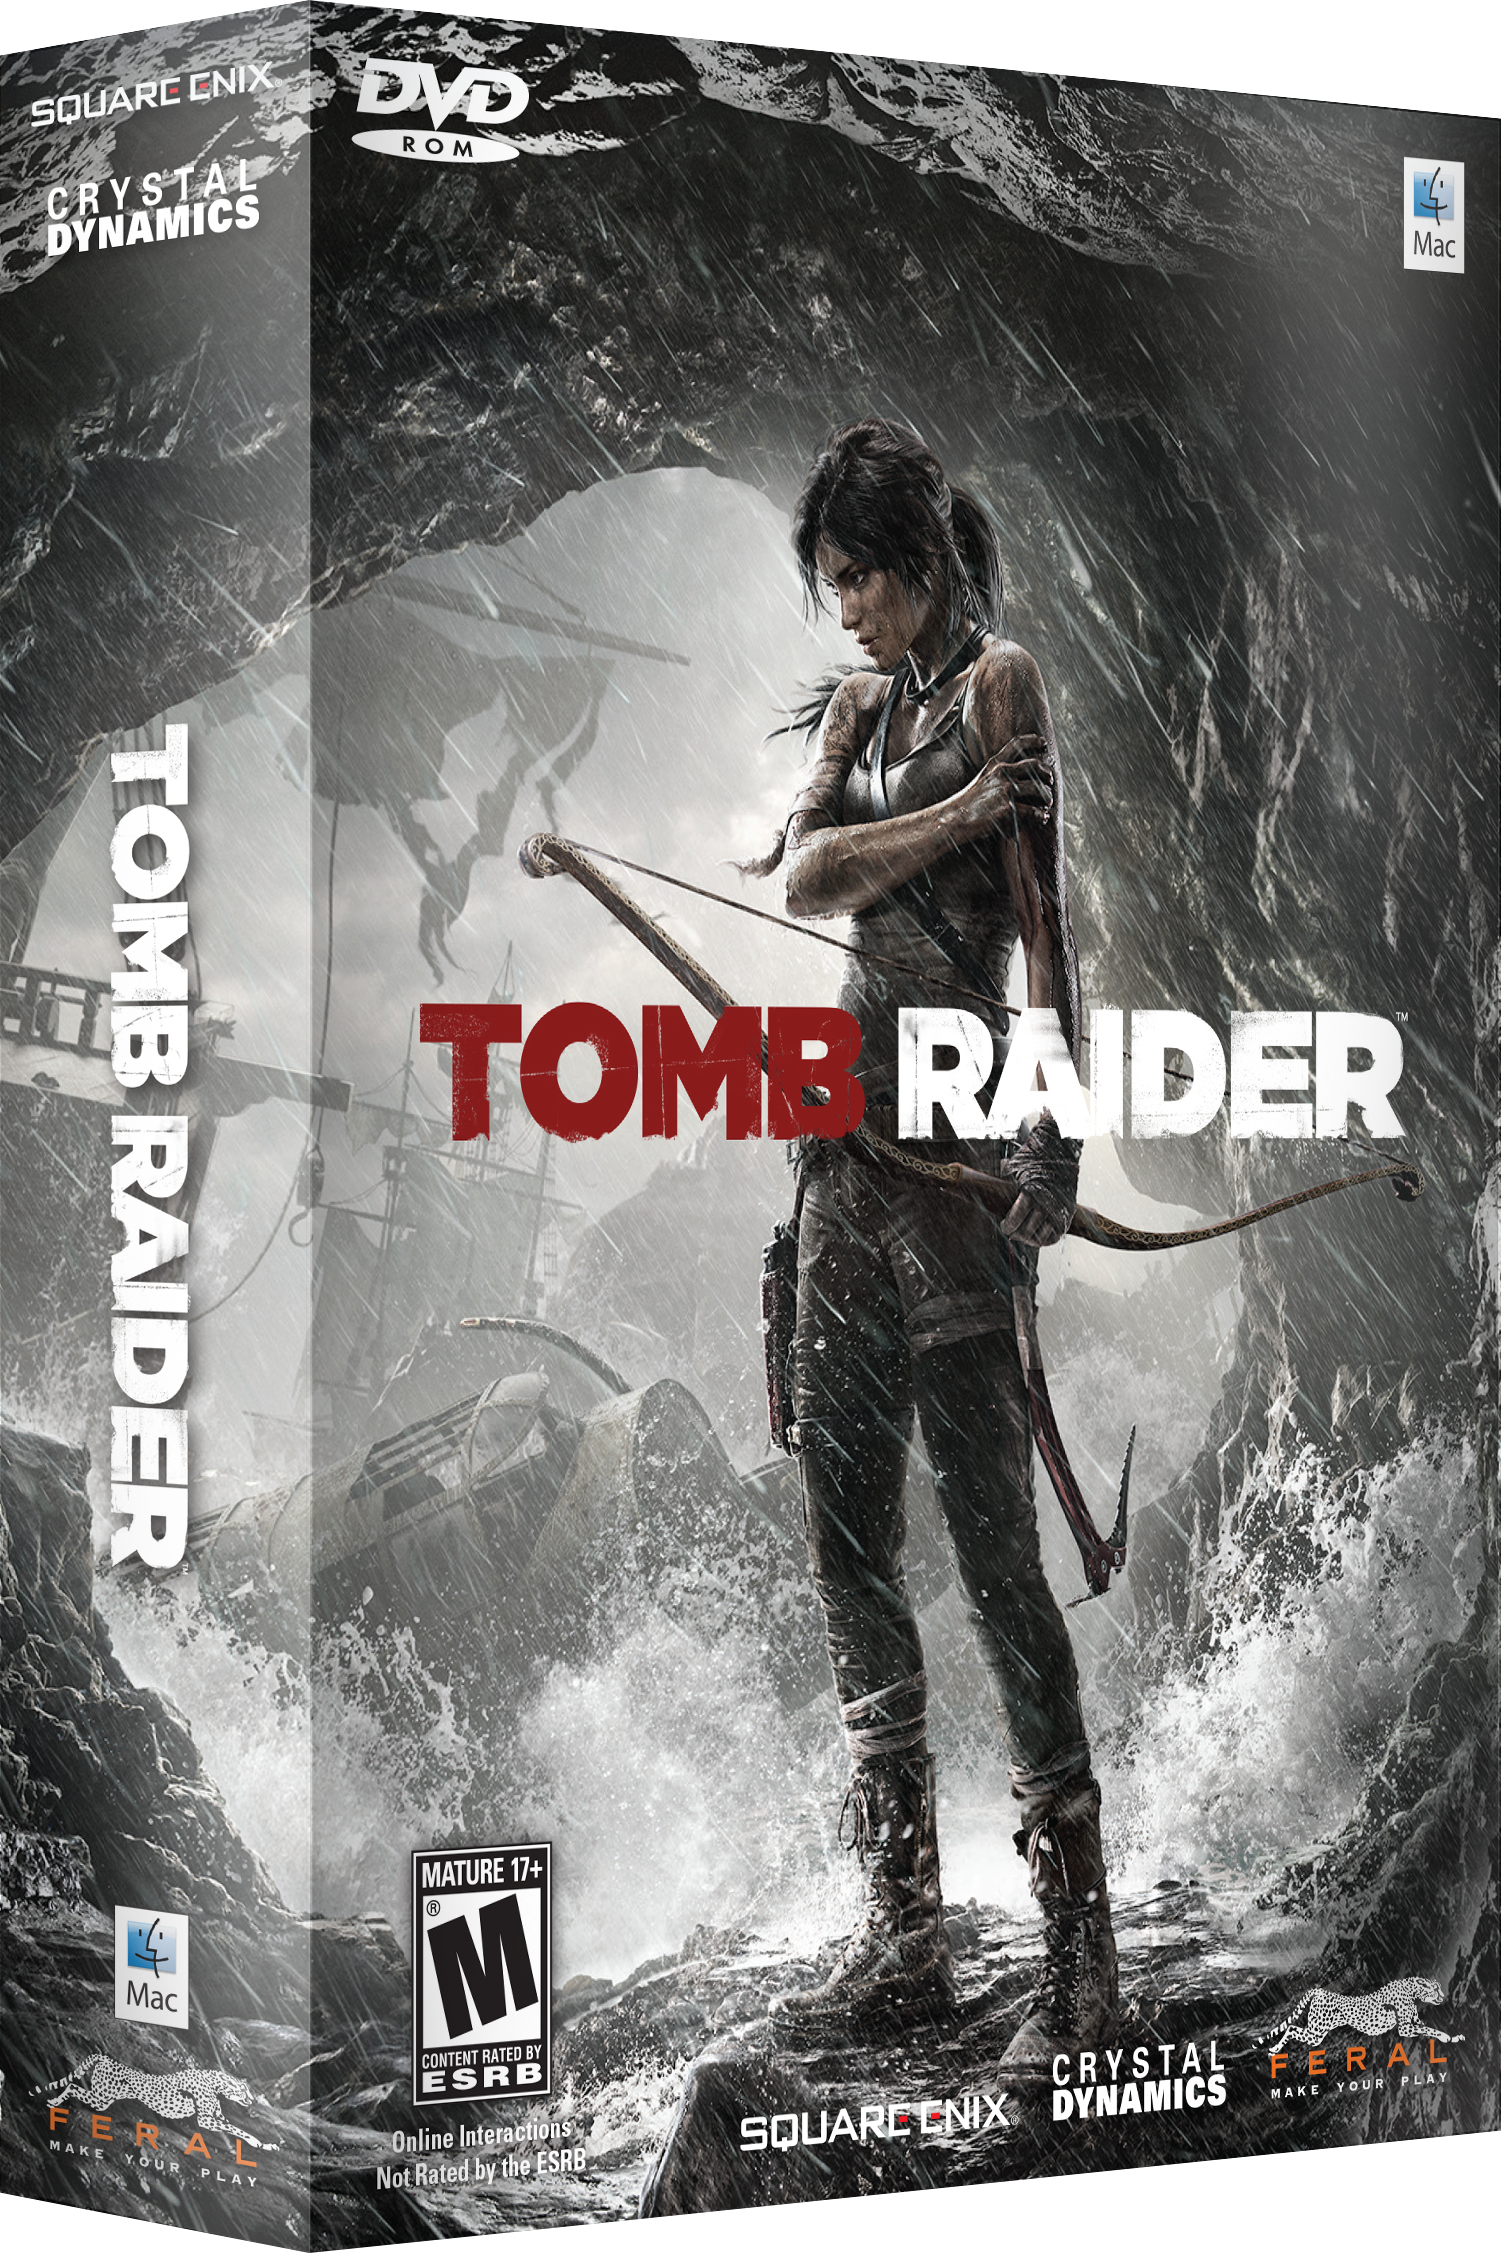 Tomb Raider 9 For Mac